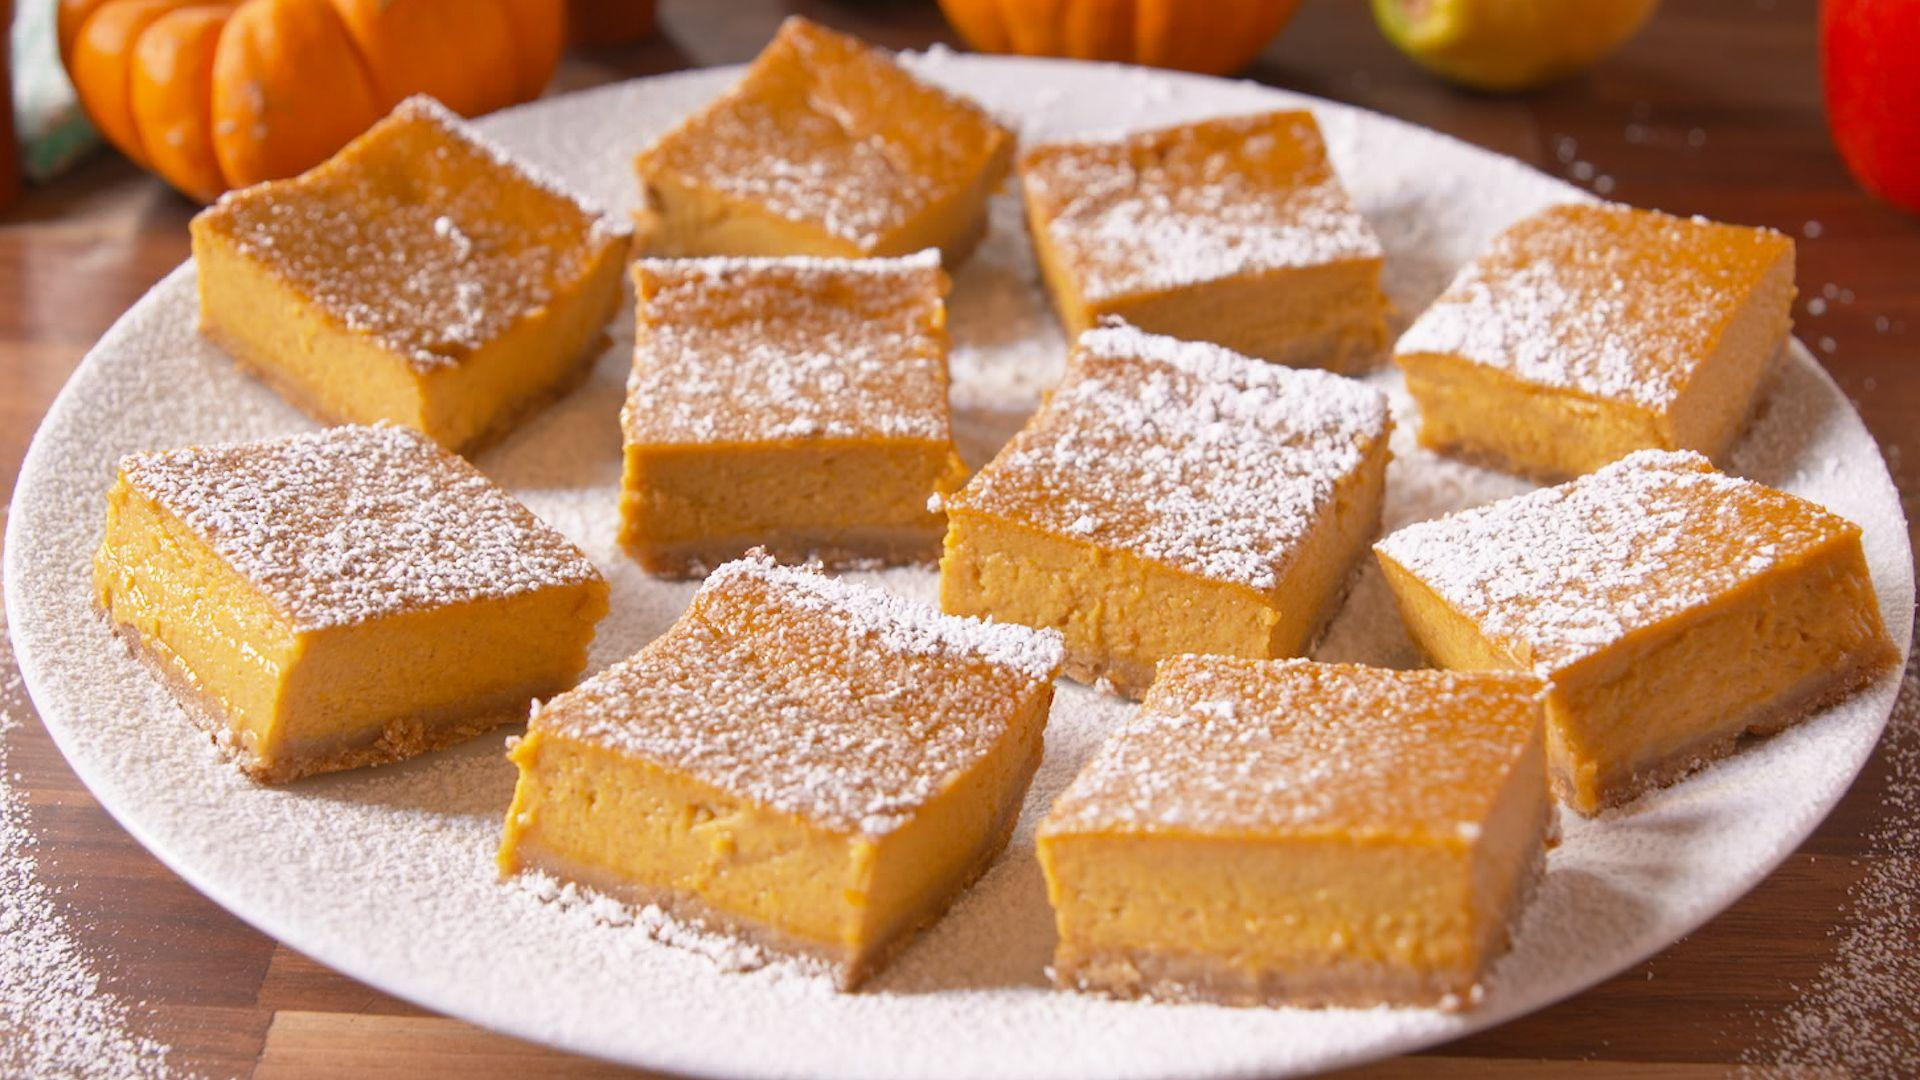 """<p>We promise—they don't<em> taste</em> healthy. But with fruit as a base and healthier ingredients swaps, they won't totally crush your summer diet either. For more season recipes check out our favorite <a href=""""/cooking/g2021/fall-dessert-recipes/"""" data-ylk=""""slk:fall dessert ideas"""" class=""""link rapid-noclick-resp"""">fall dessert ideas</a> and <a href=""""/holiday-recipes/halloween/g314/halloween-party-treats/"""" data-ylk=""""slk:fun Halloween party treats"""" class=""""link rapid-noclick-resp"""">fun Halloween party treats</a>!</p>"""